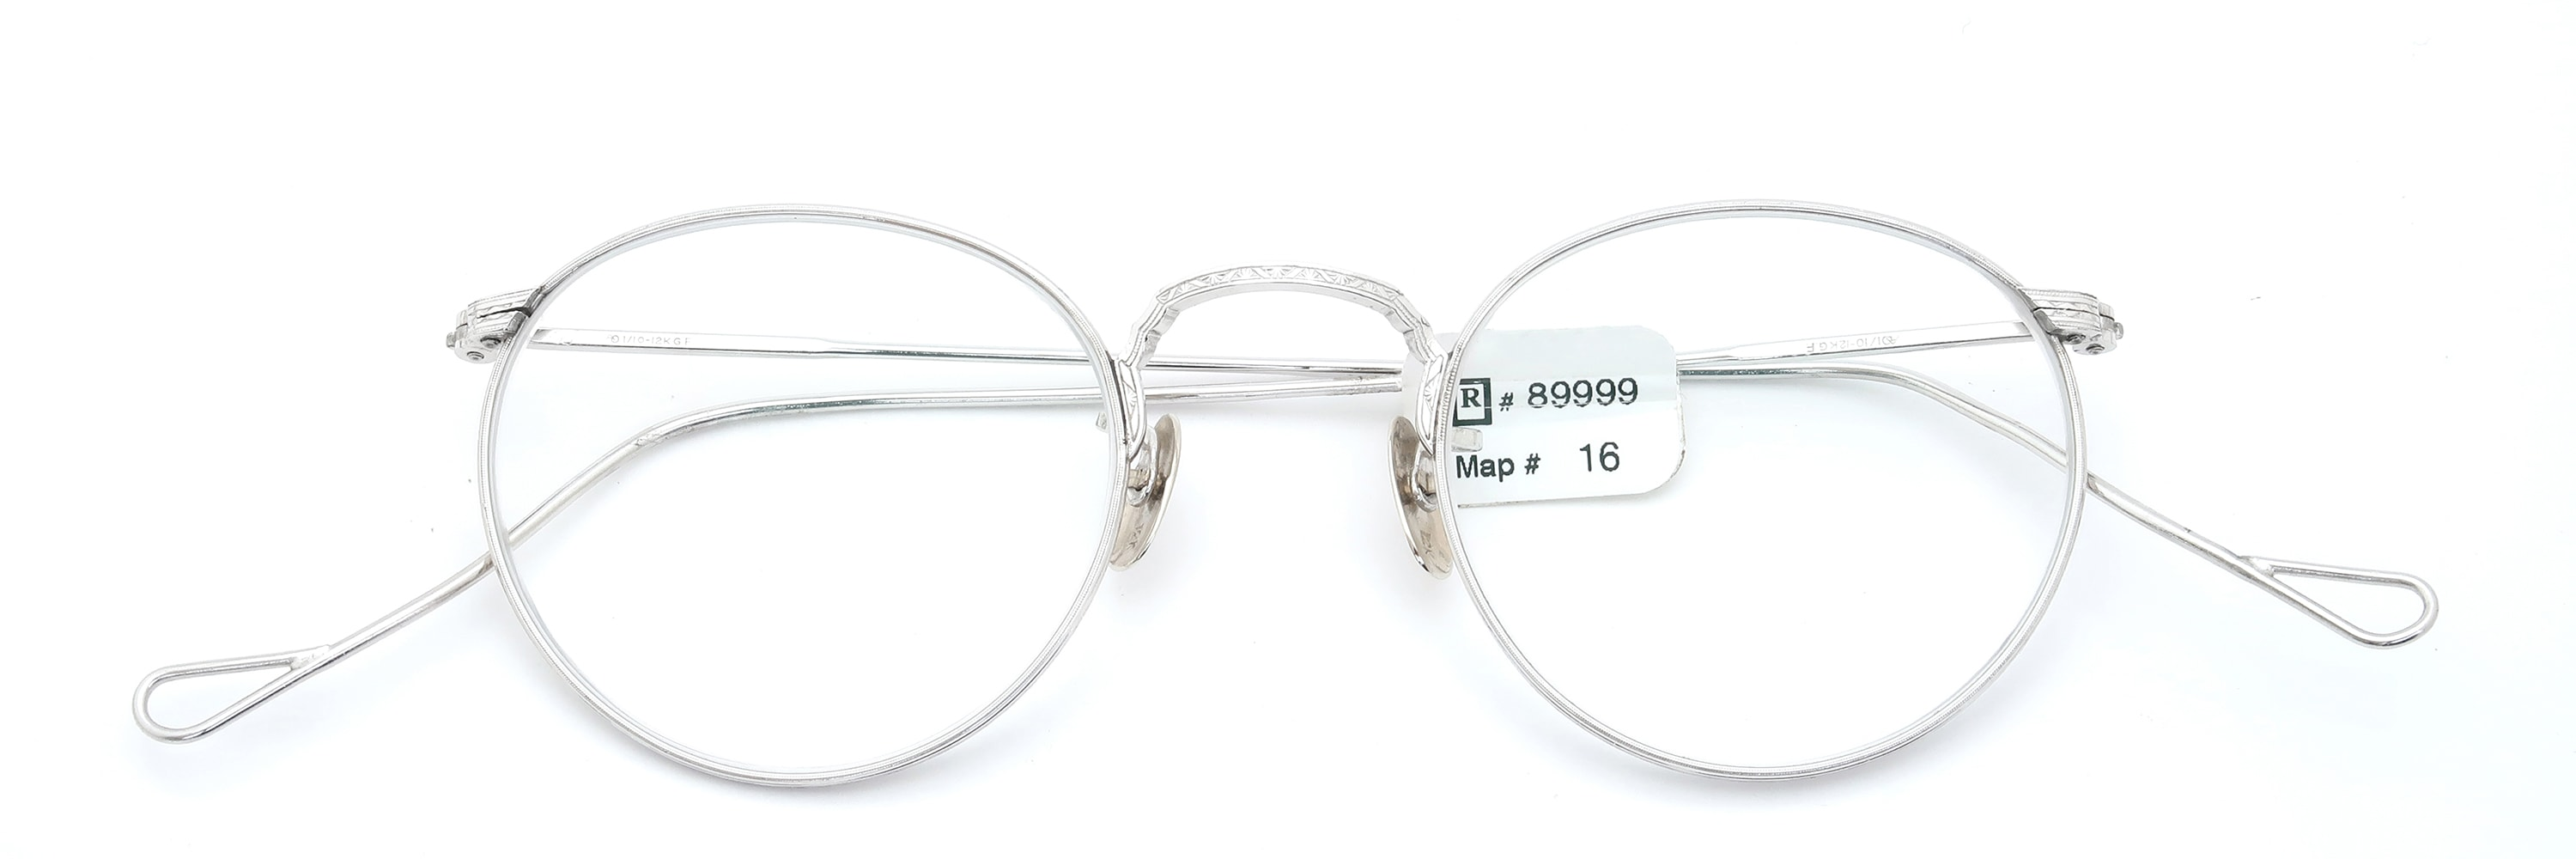 The Spectacle メガネ 1930s-40s American Optical Full-Frame Ful-Vue WG 44-22 イメージ